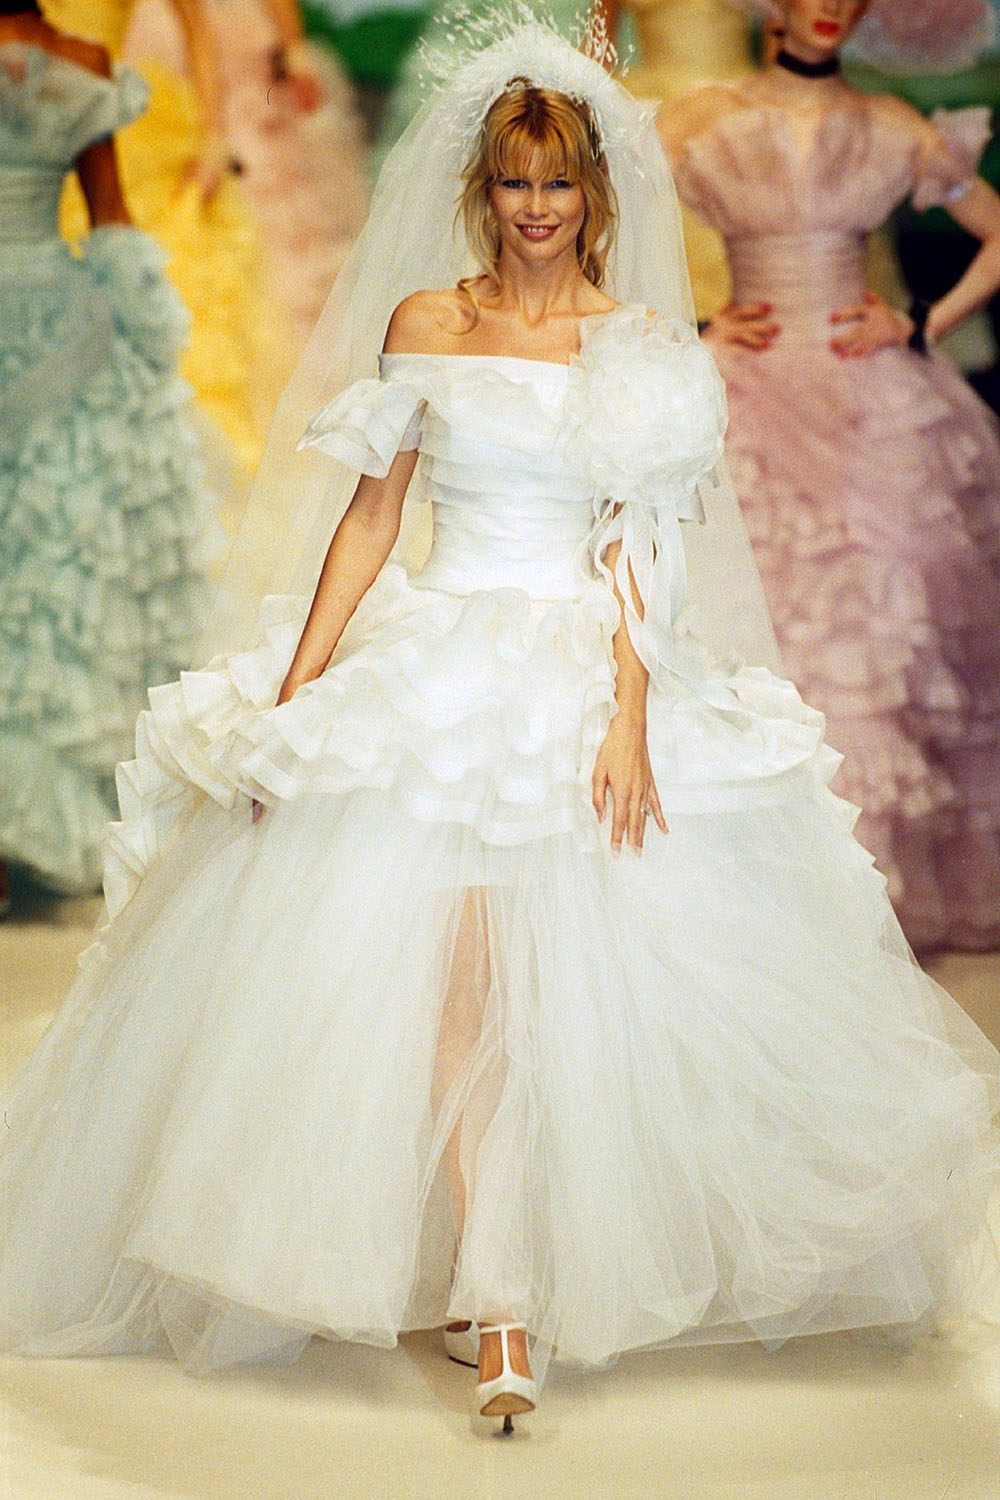 Best Chanel Wedding Dresses These Are The Celebrity Brides To Know